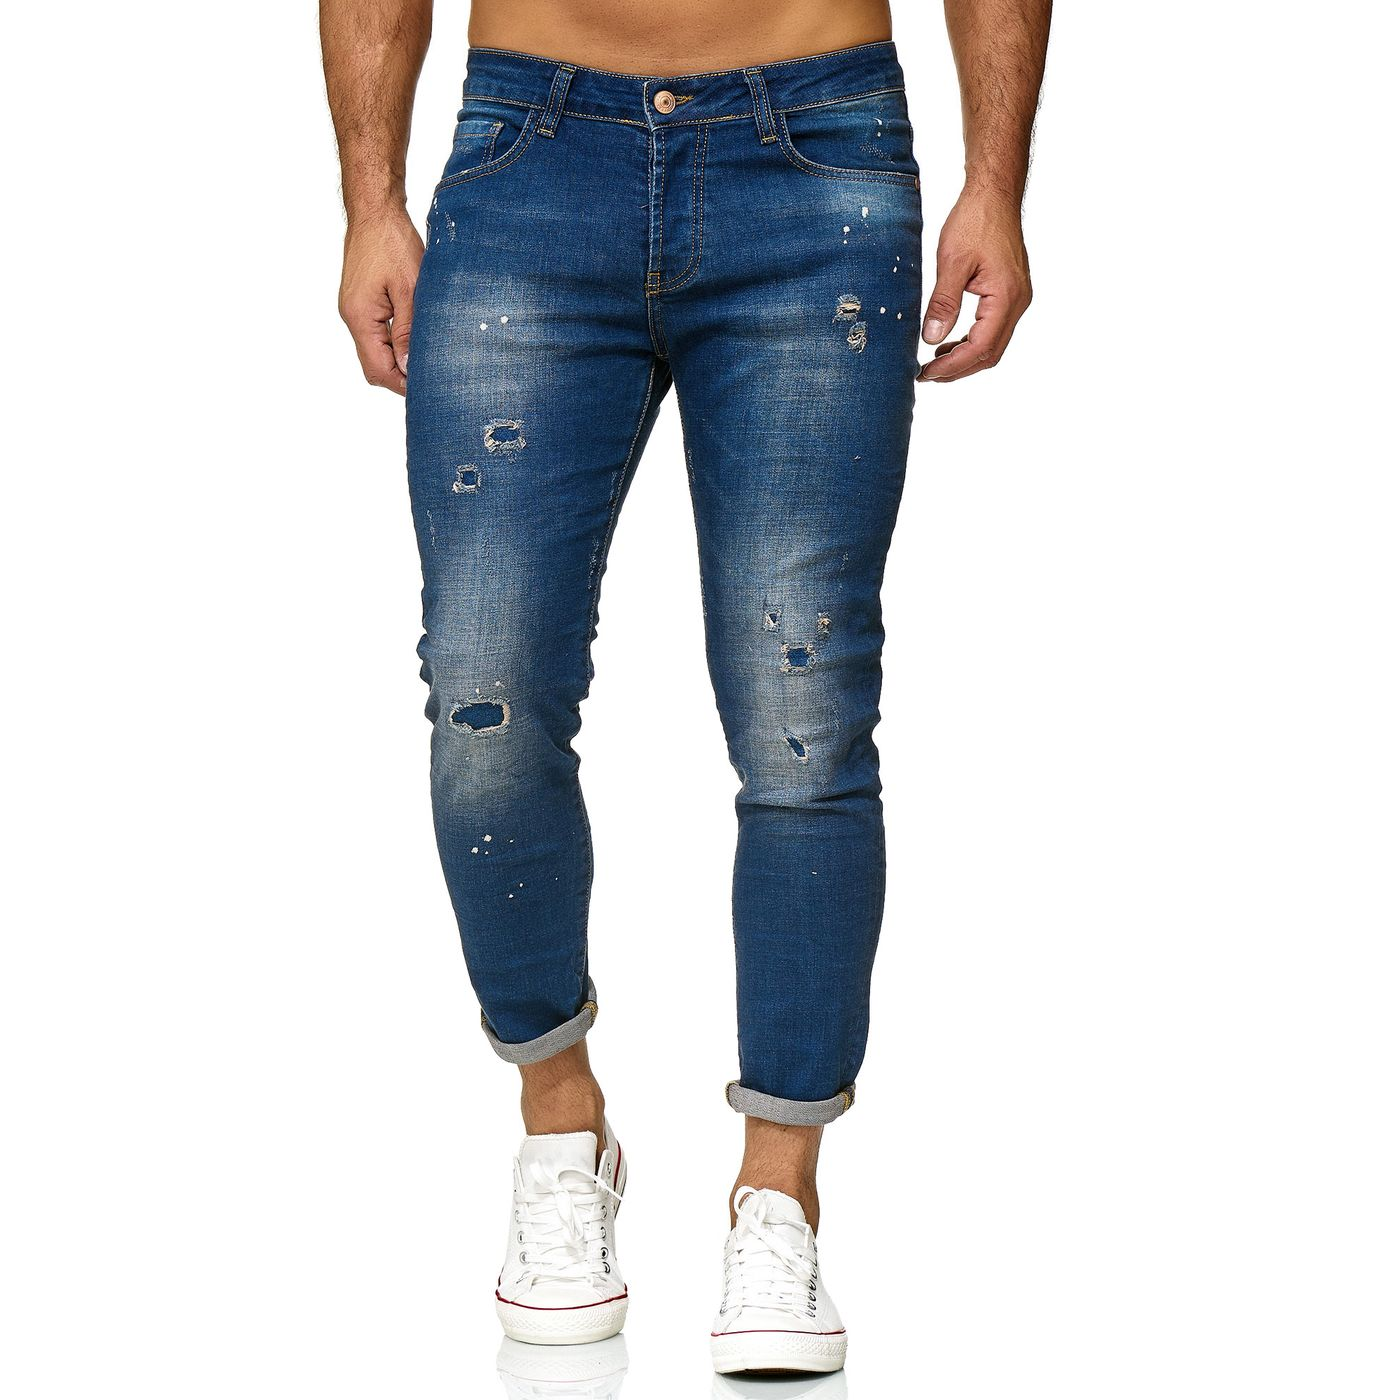 herren jeans red bridge herren jeans hose slim fit ripped painted destroyed  slim fit ripped painted destroyed